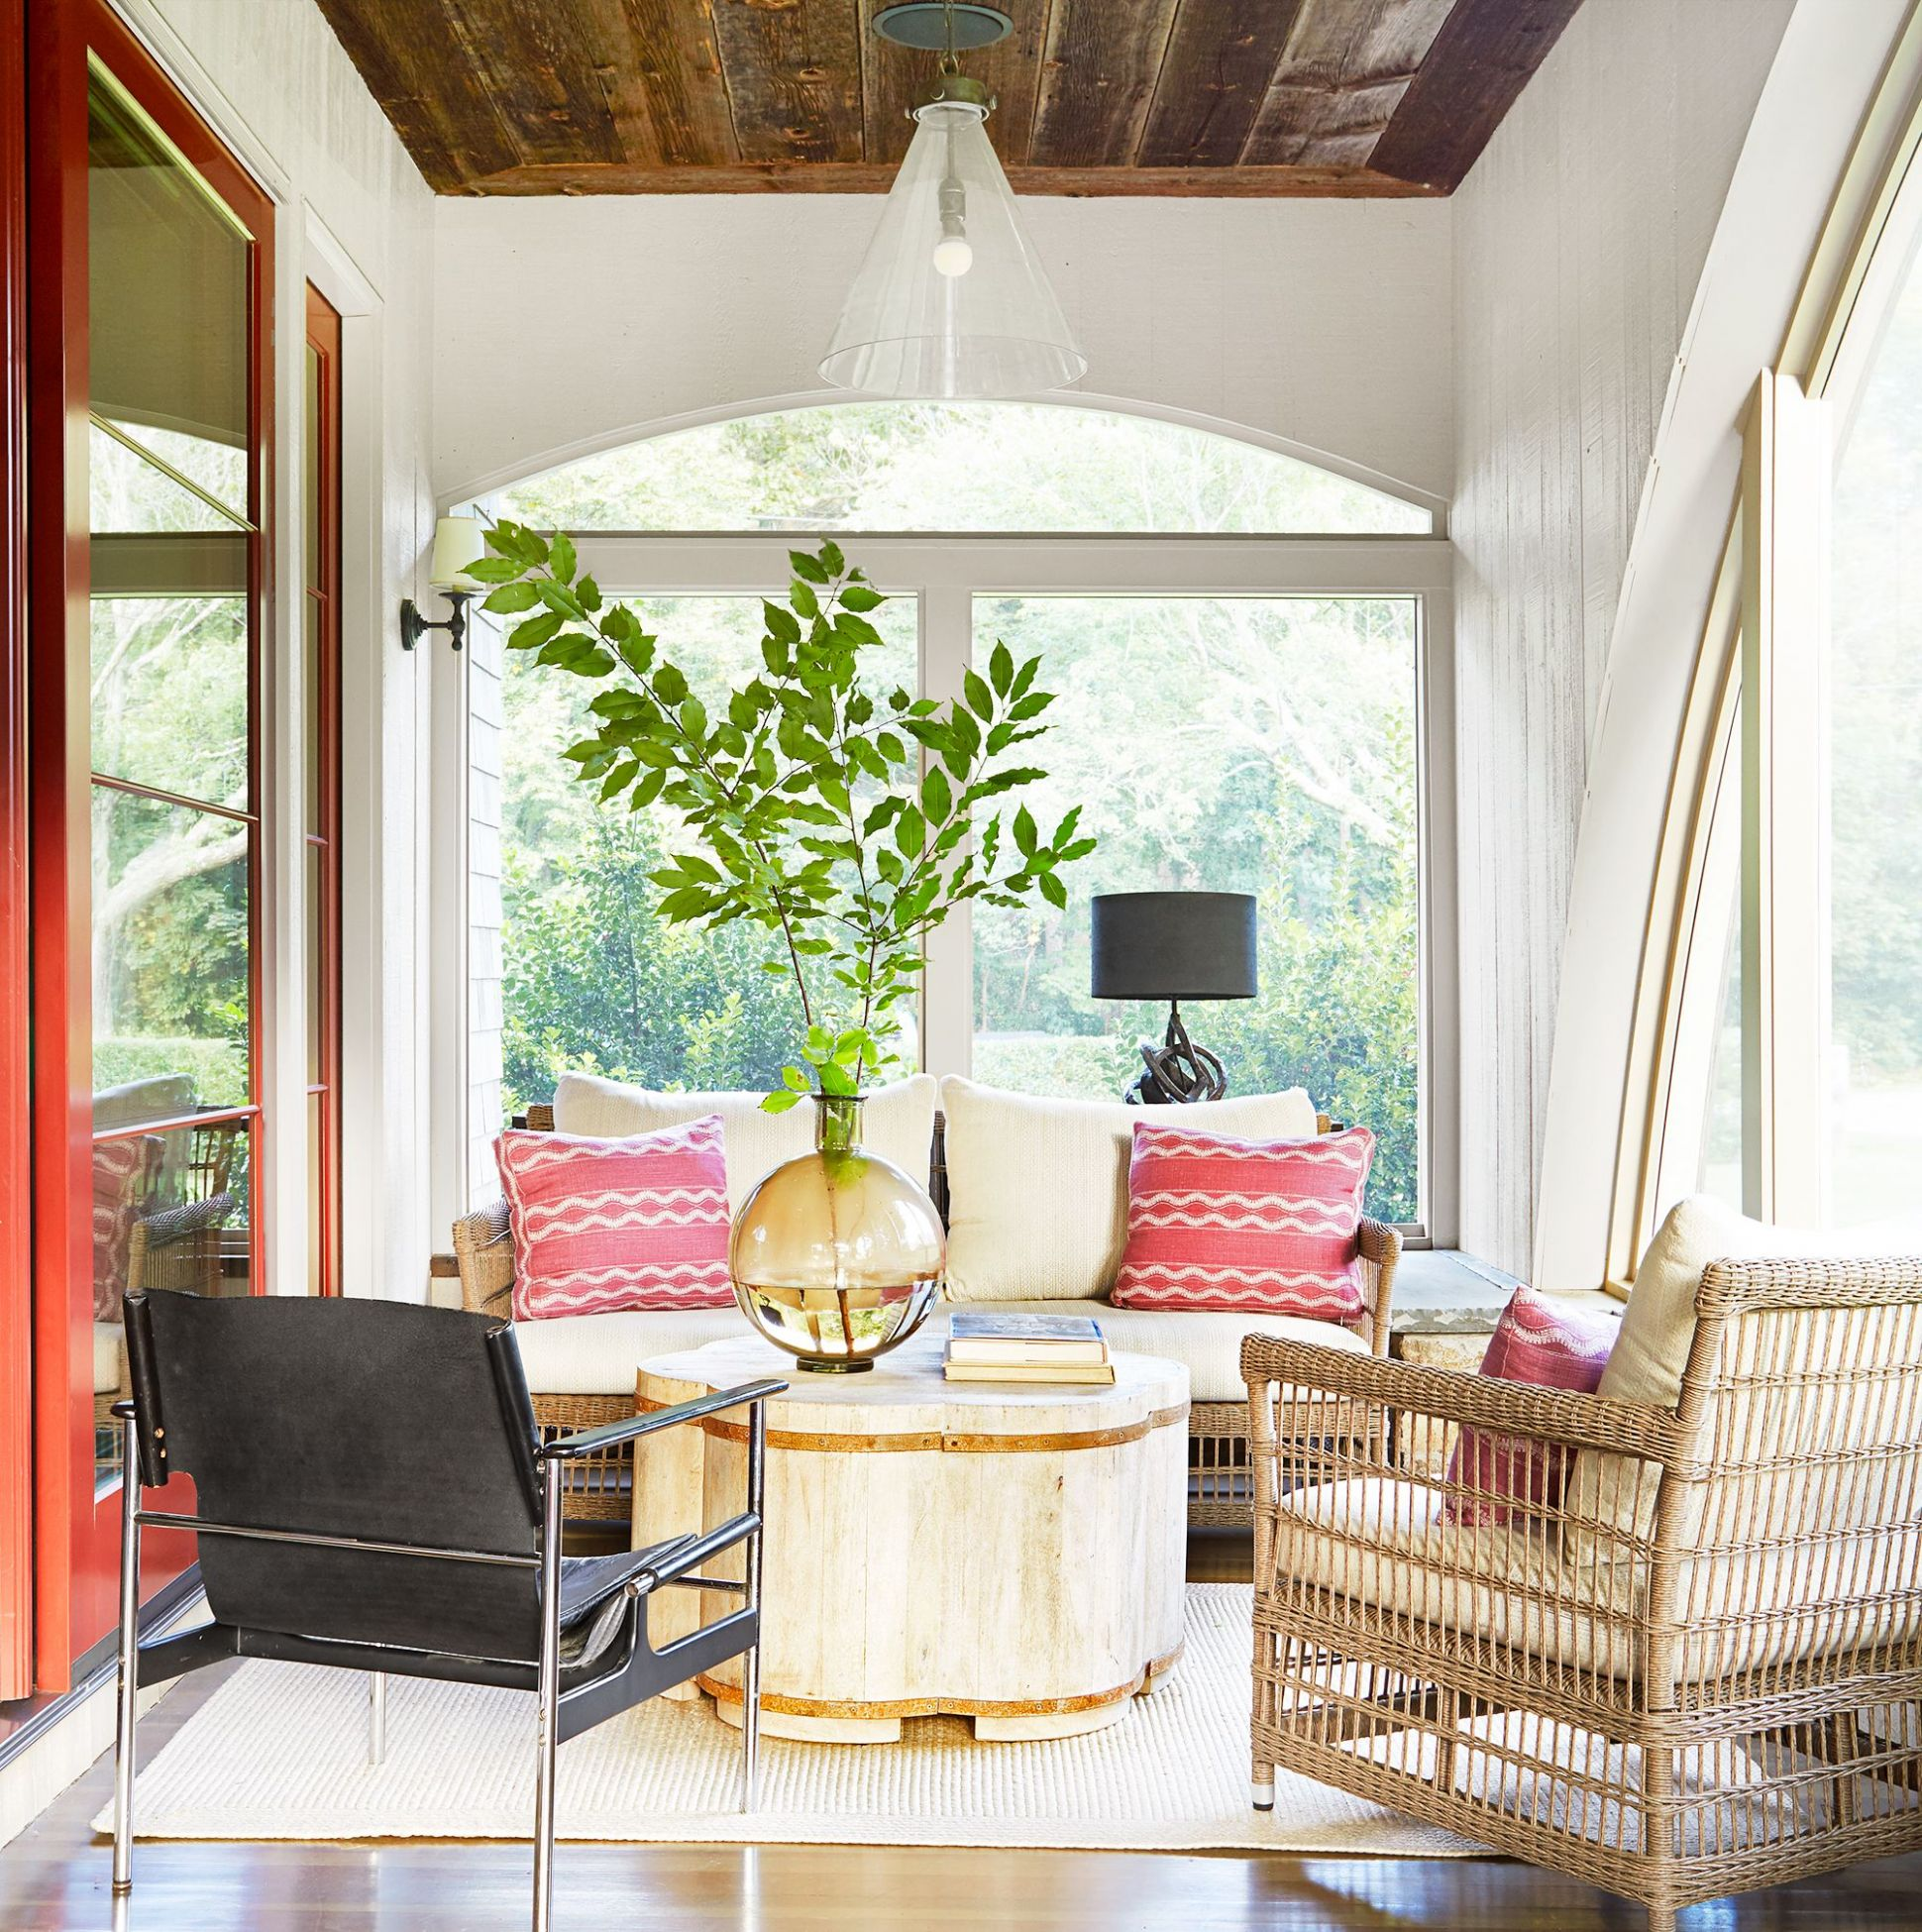 9 Pretty Sunroom Ideas - Chic Designs & Decor for Screened In Porches - sunroom ideas pics